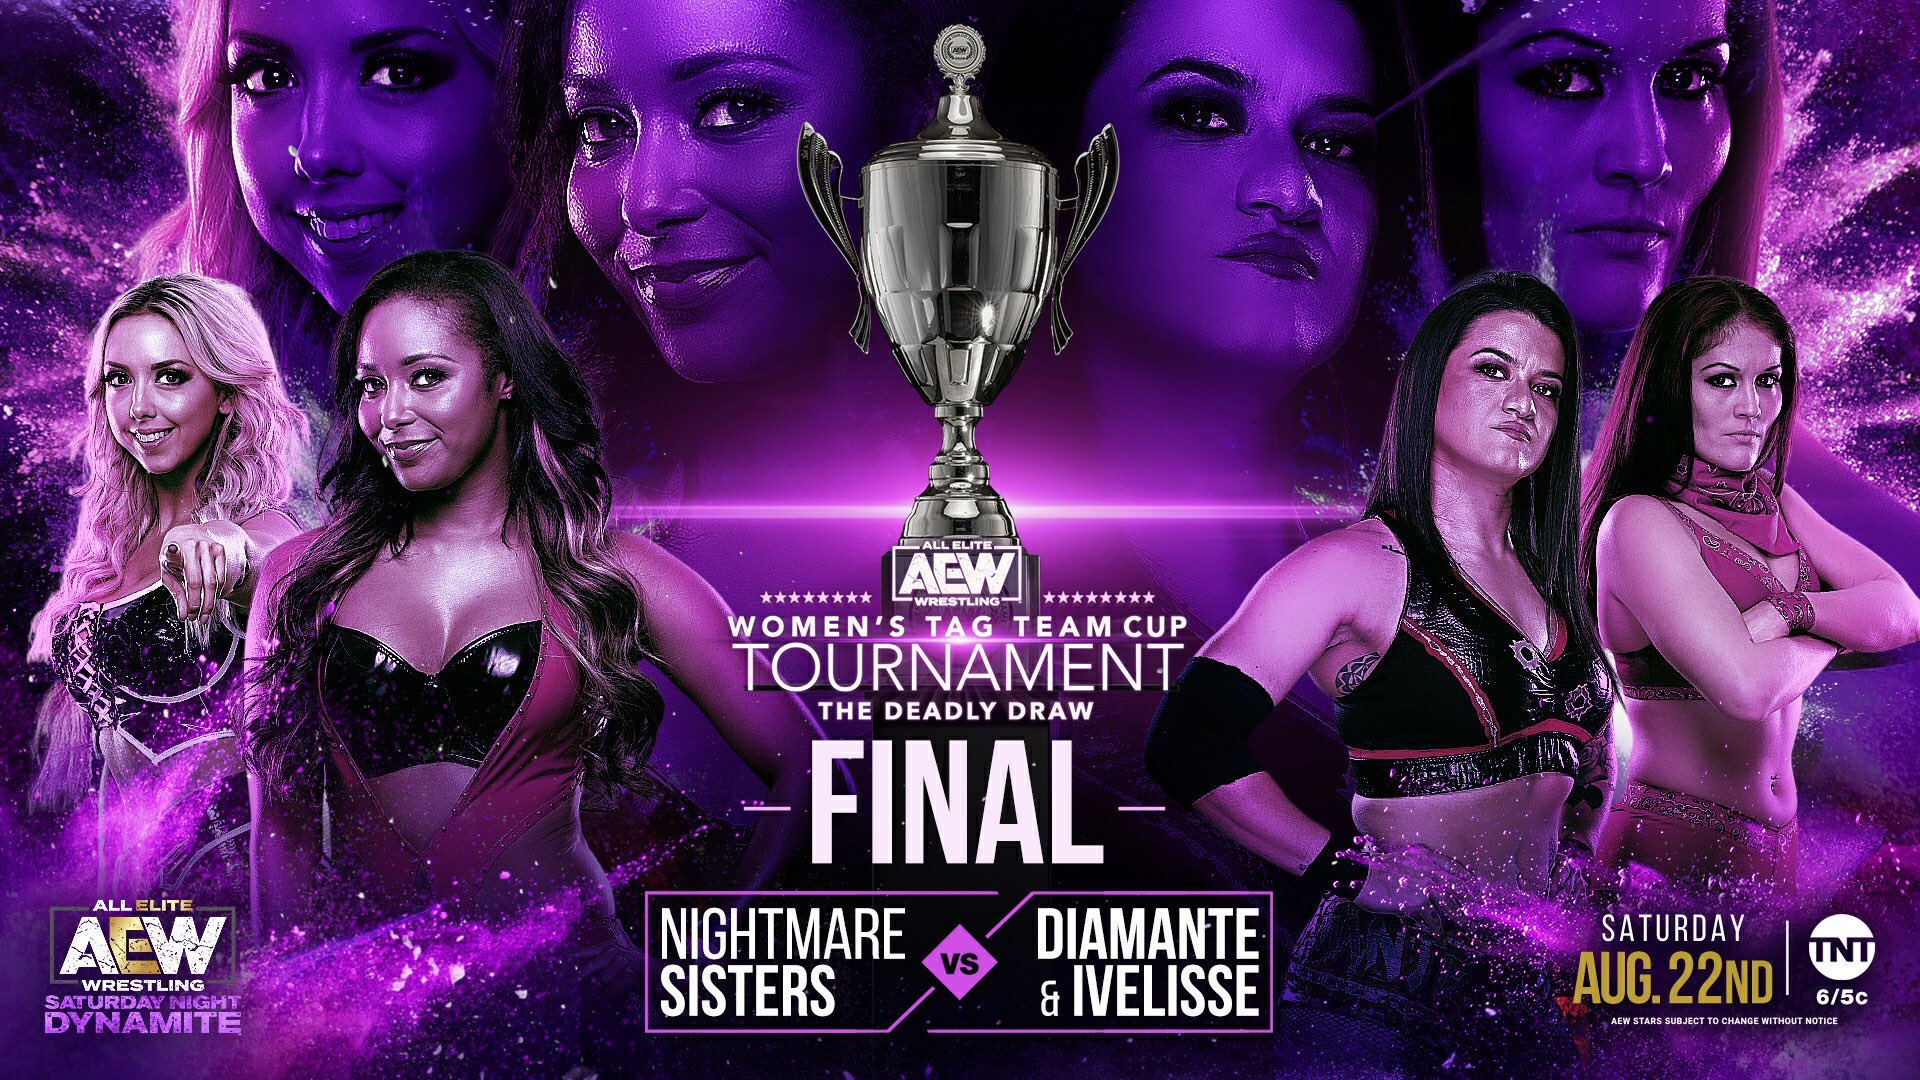 """Tony Khan on Twitter: """"Great to see @thunderrosa22 the NWA Women's World  Champion on #AEWDynamite, and now it's the finals of the Deadly Draw, the  AEW Women's Tag Team Cup Tournament, the"""